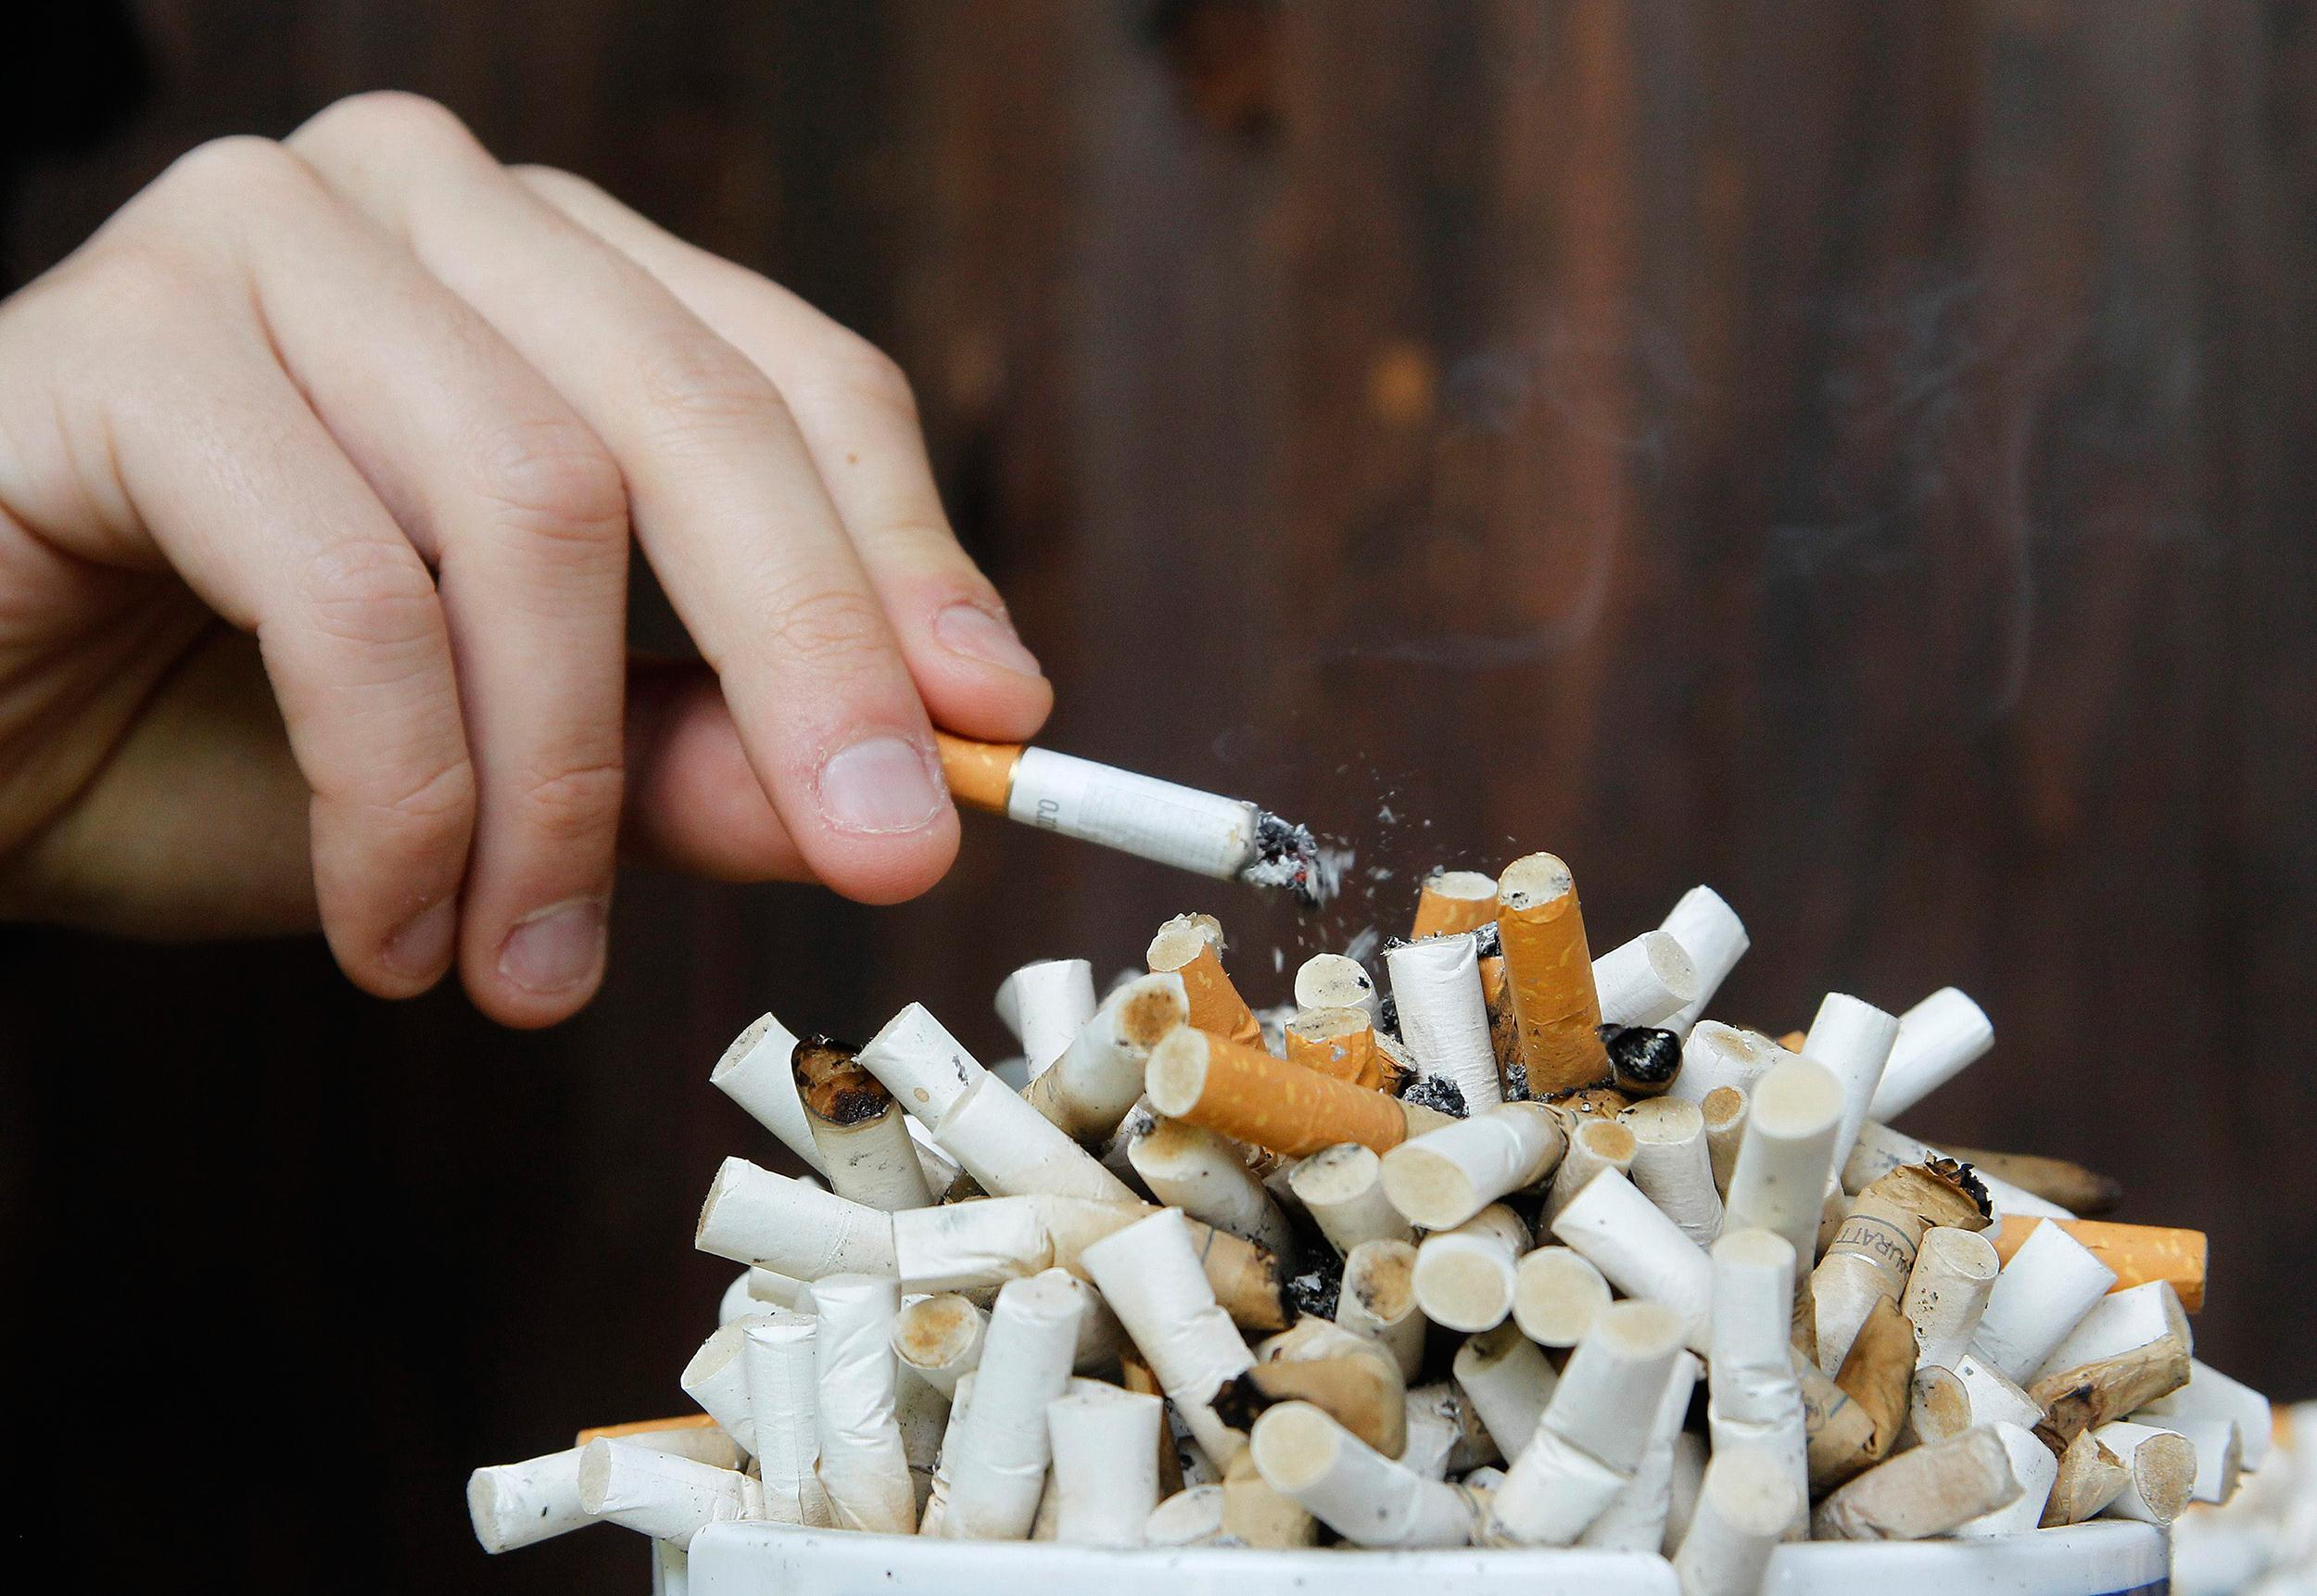 Image: A man taps ashes off his cigarette into an ashtray filled with cigarette butts on a table.